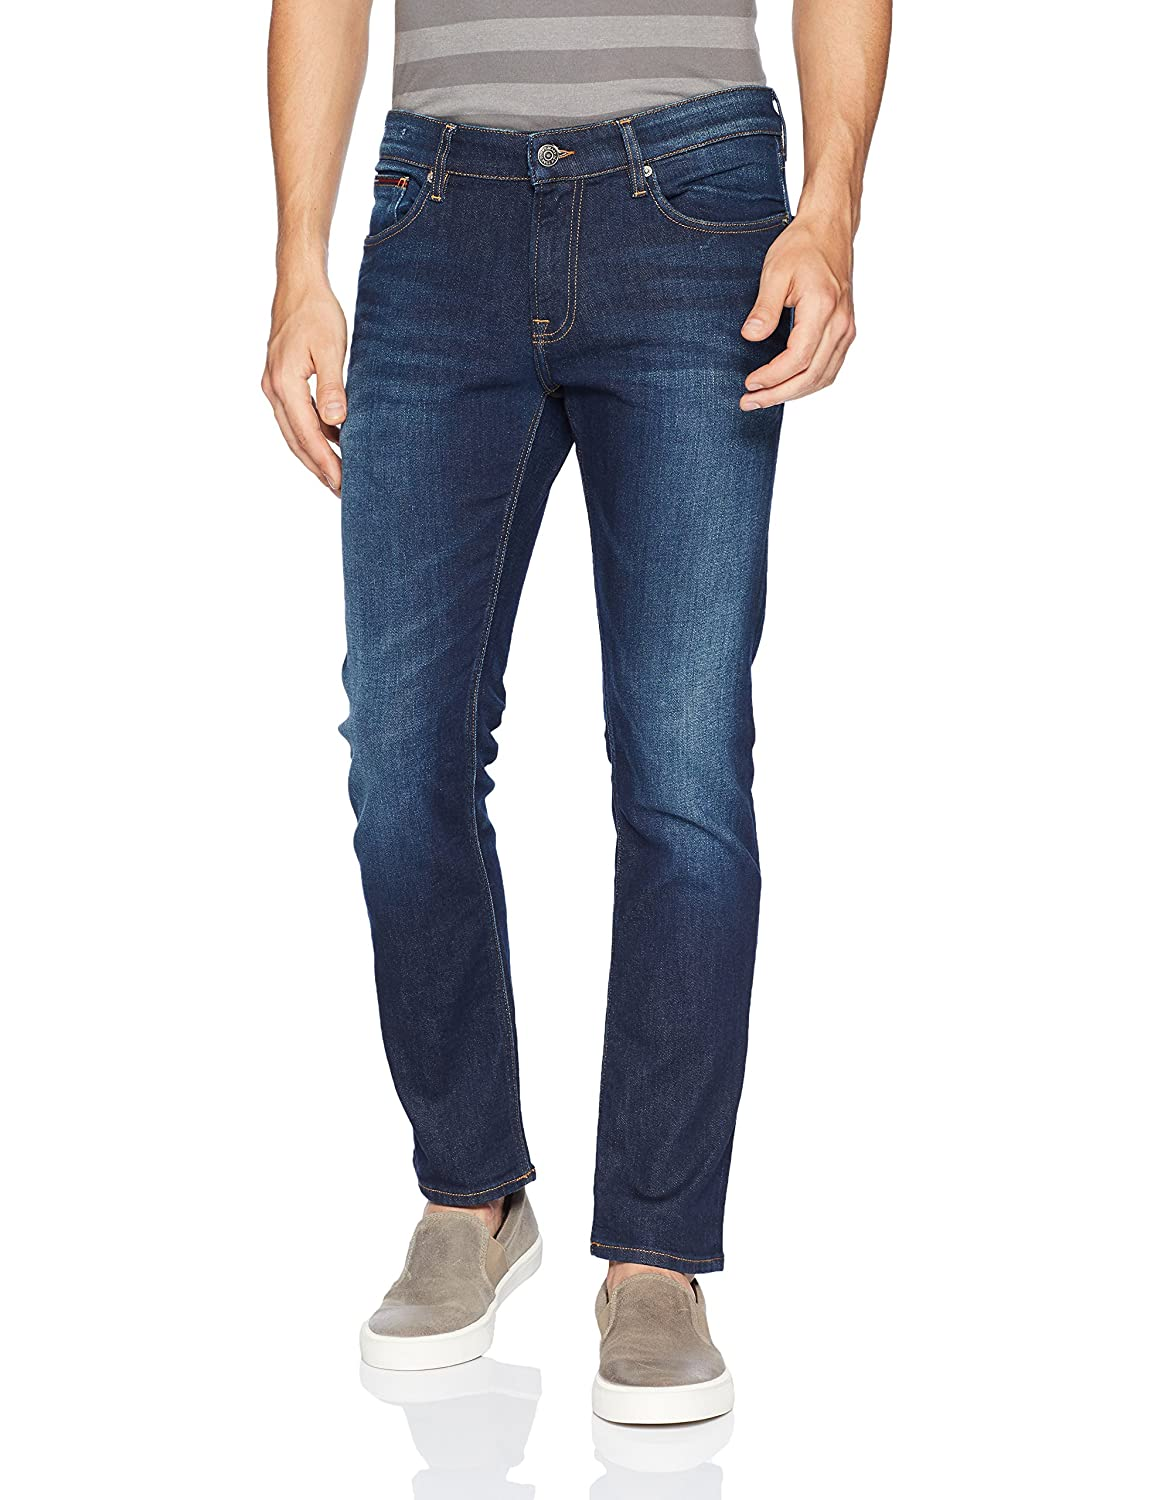 Tommy Hilfiger Mens Original Scanton Slim Fit Jeans